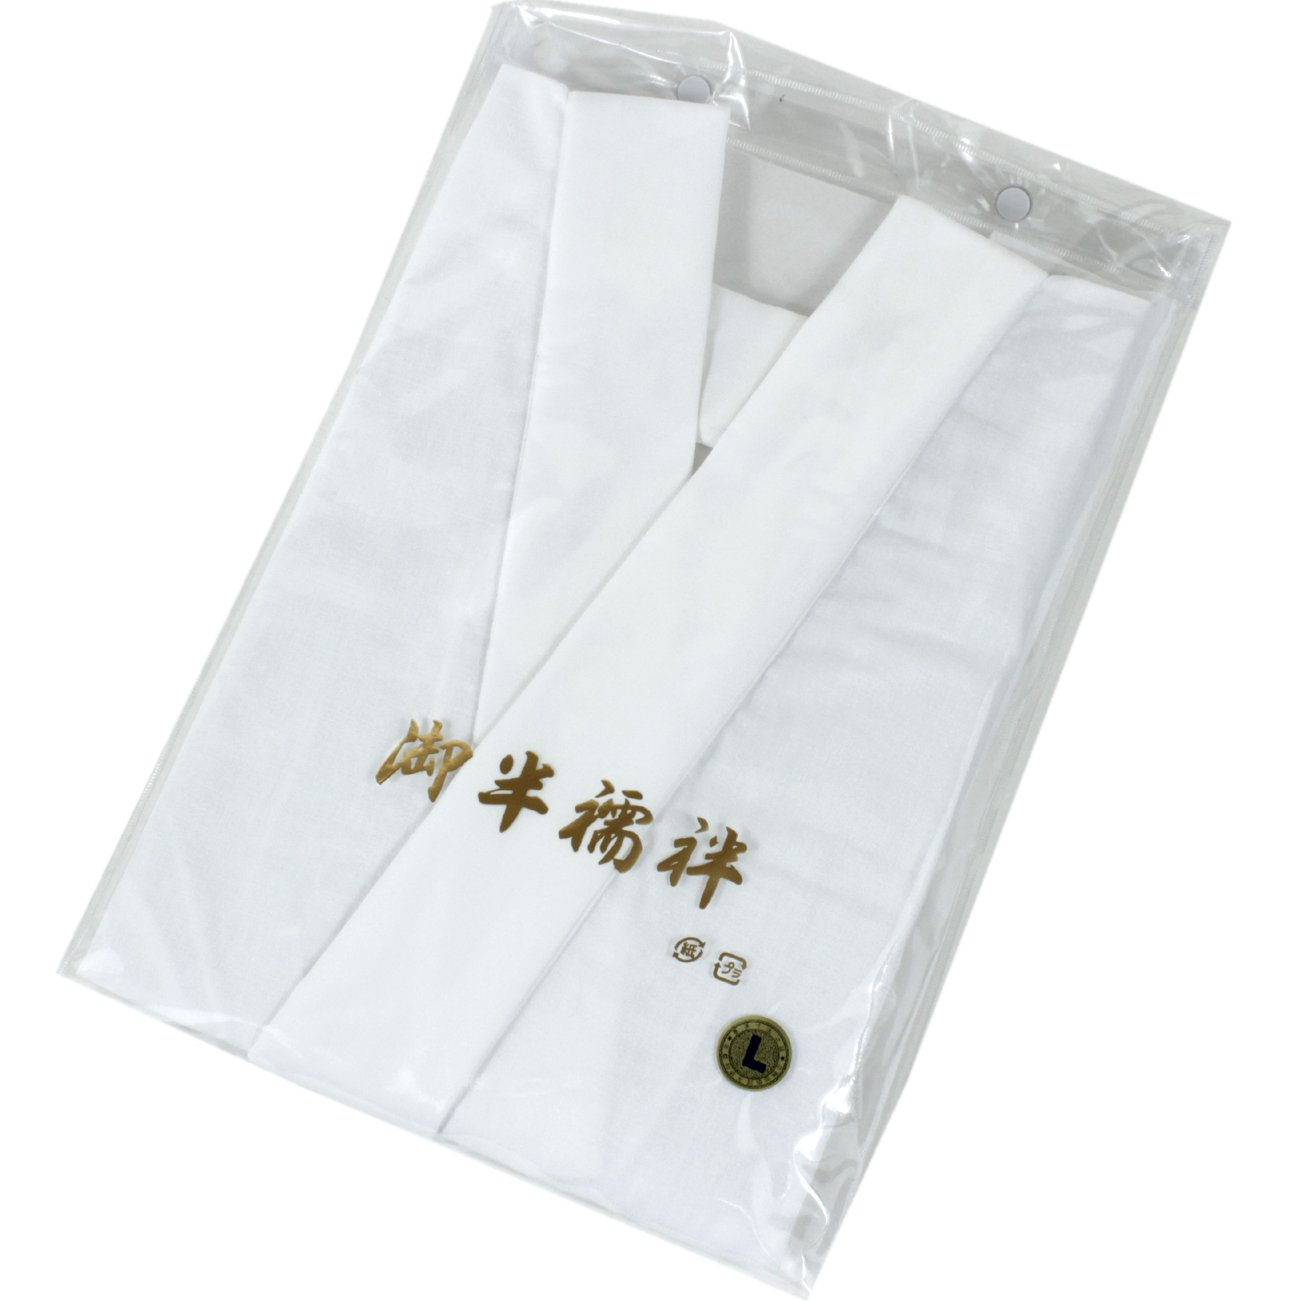 Kimono Japanese Women's Hanjuban Sleeves Changeable(Usotsuki Hanjuban) White) 20003413-4